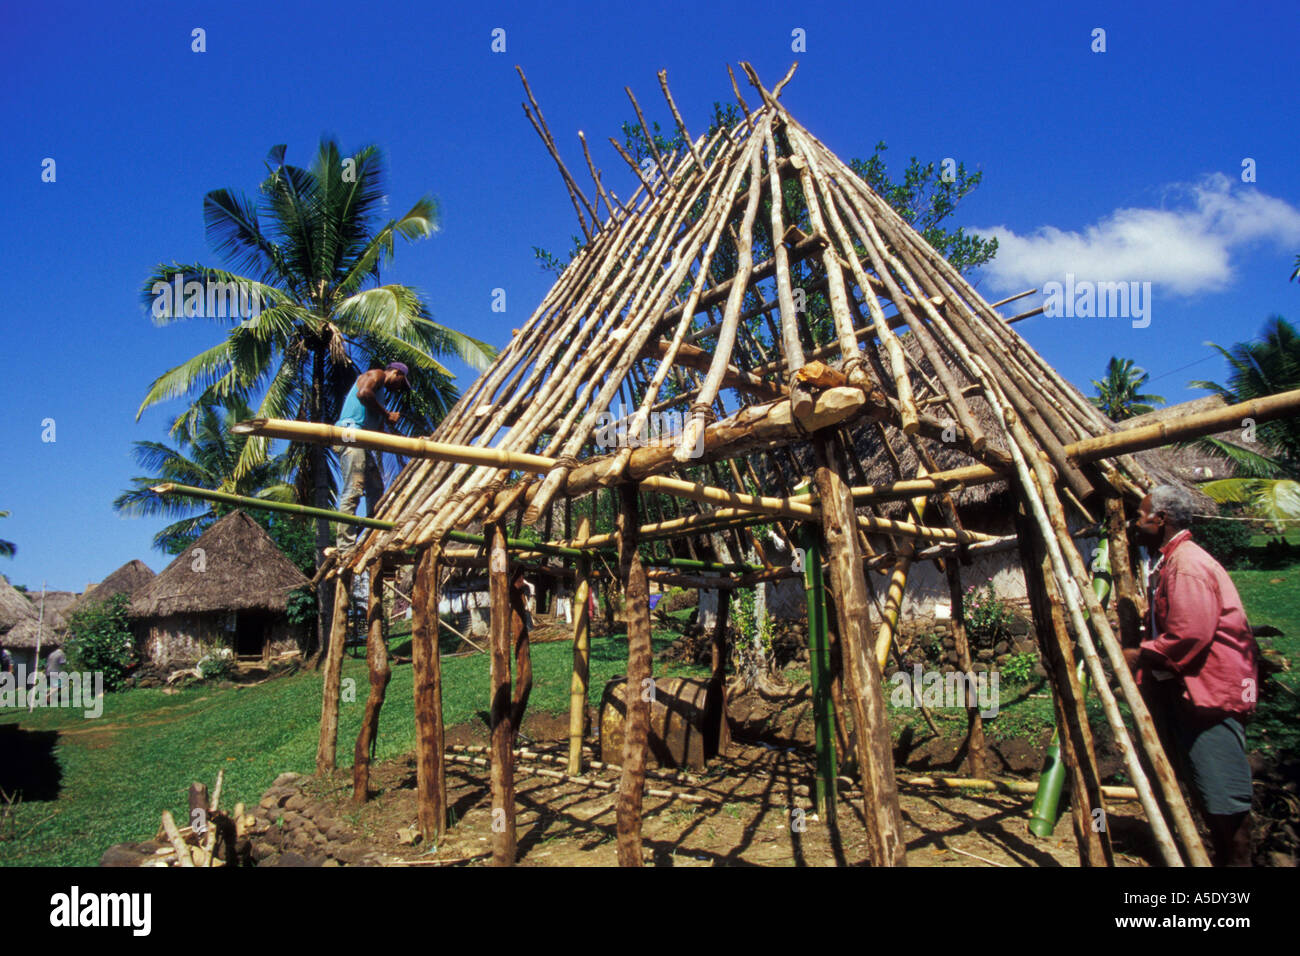 Traditional building of a house in the mountains of viti for Building a house in the mountains